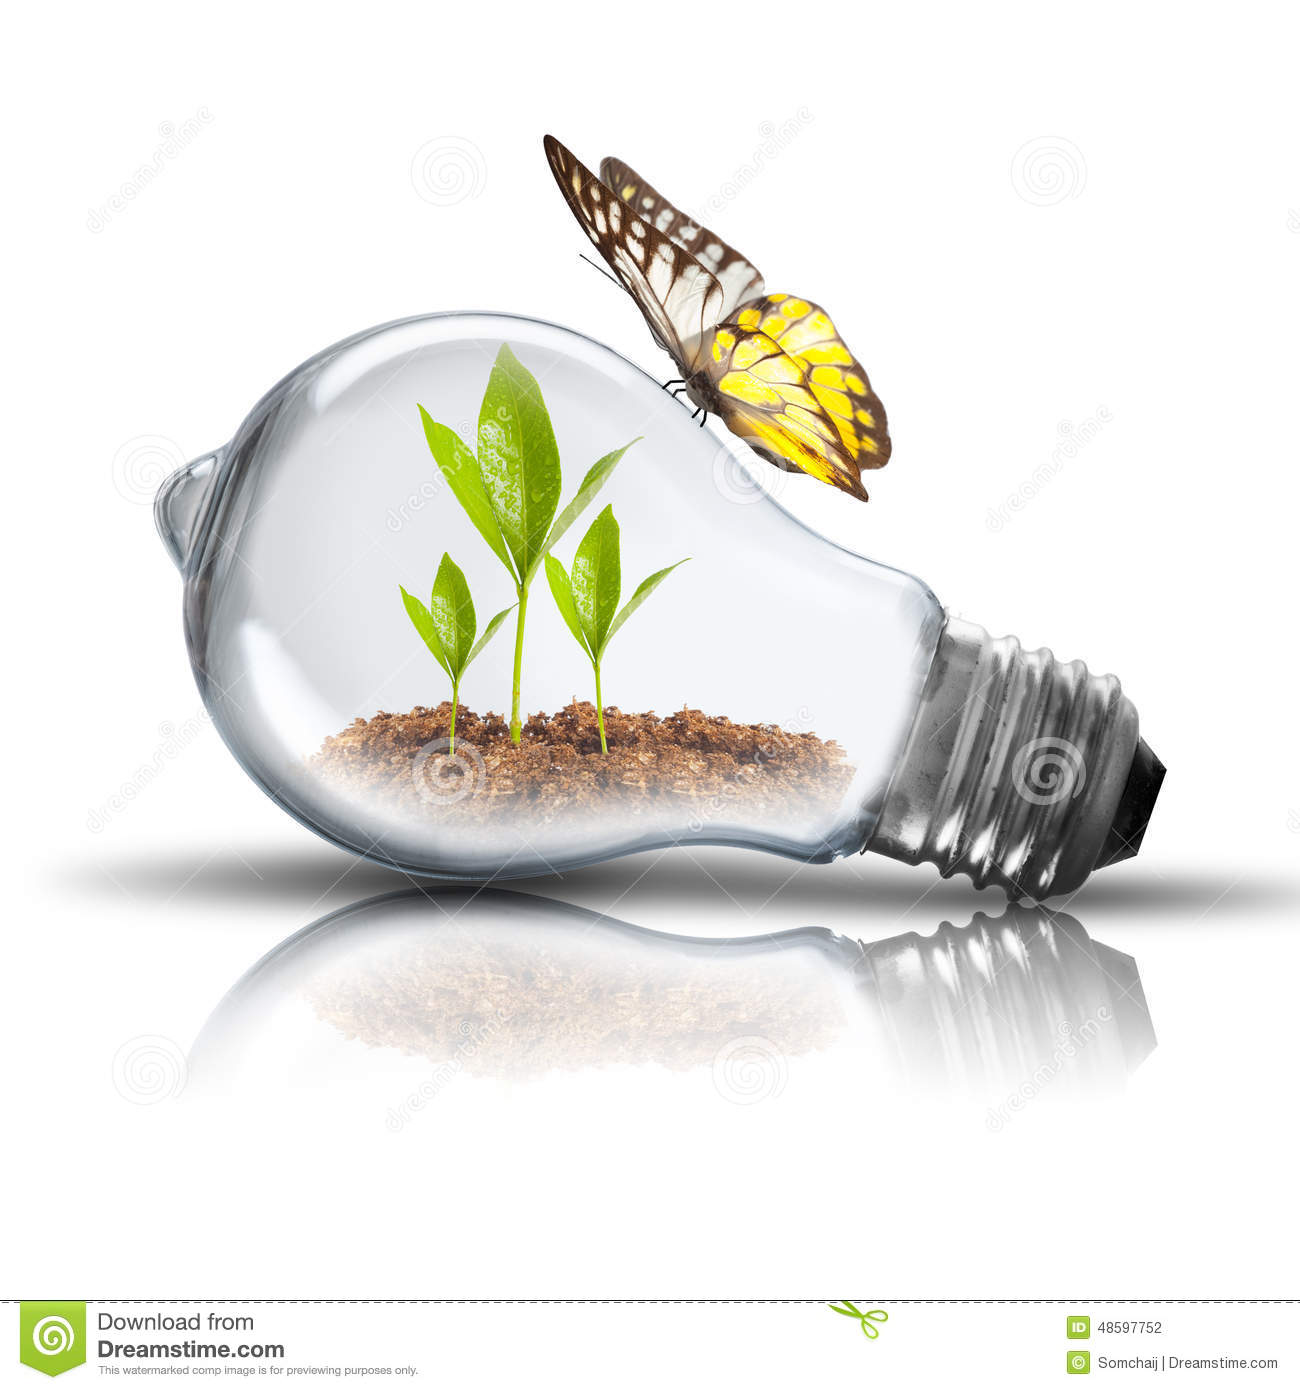 Light bulb with soil and green plant sprout inside and for Soil and green